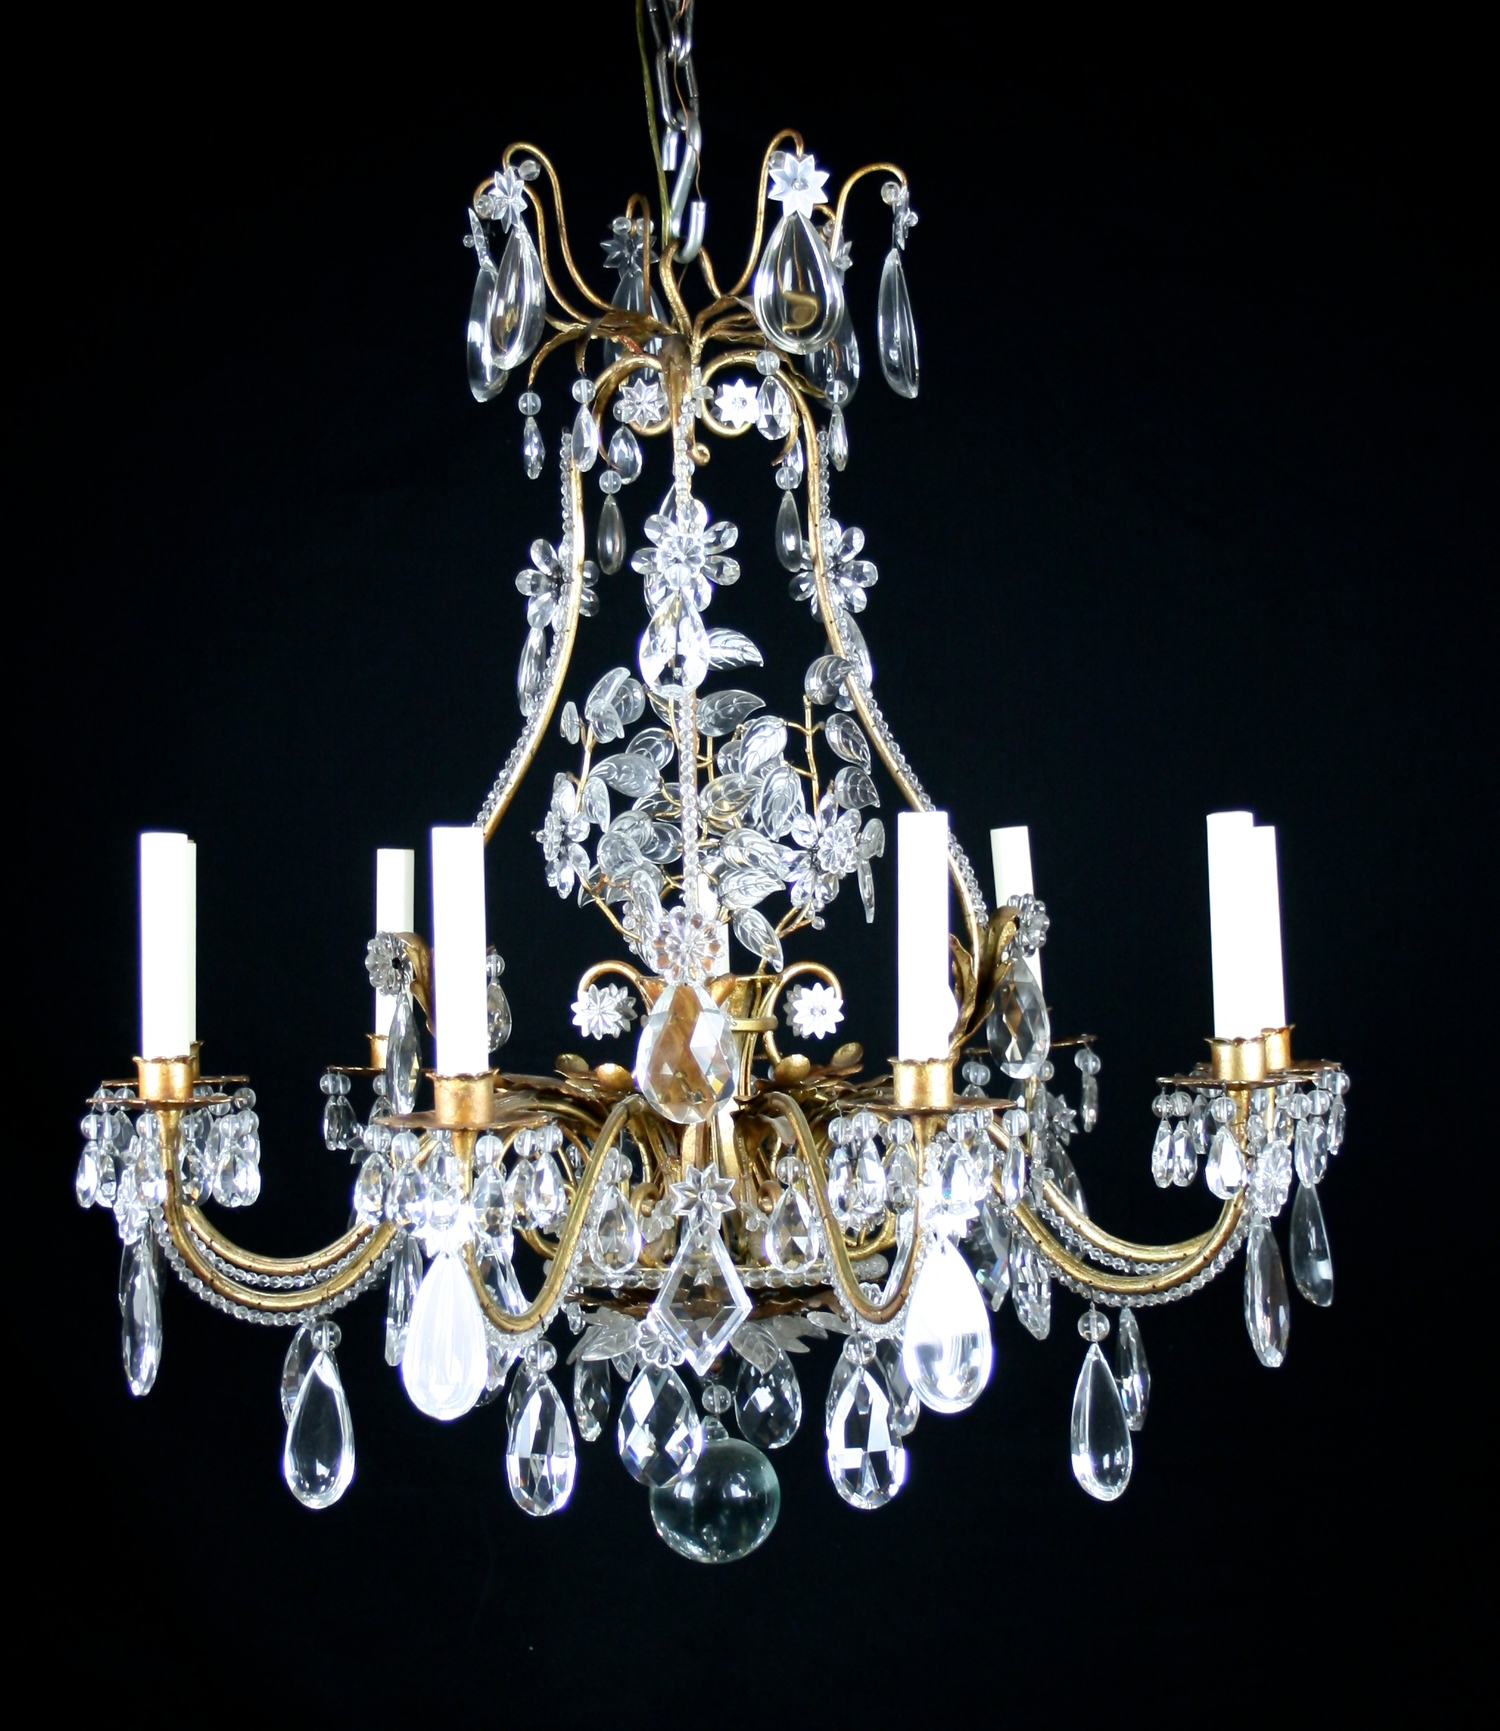 Nesle inc antique chandeliers and reproductions new yorkandeliers 1 arubaitofo Gallery